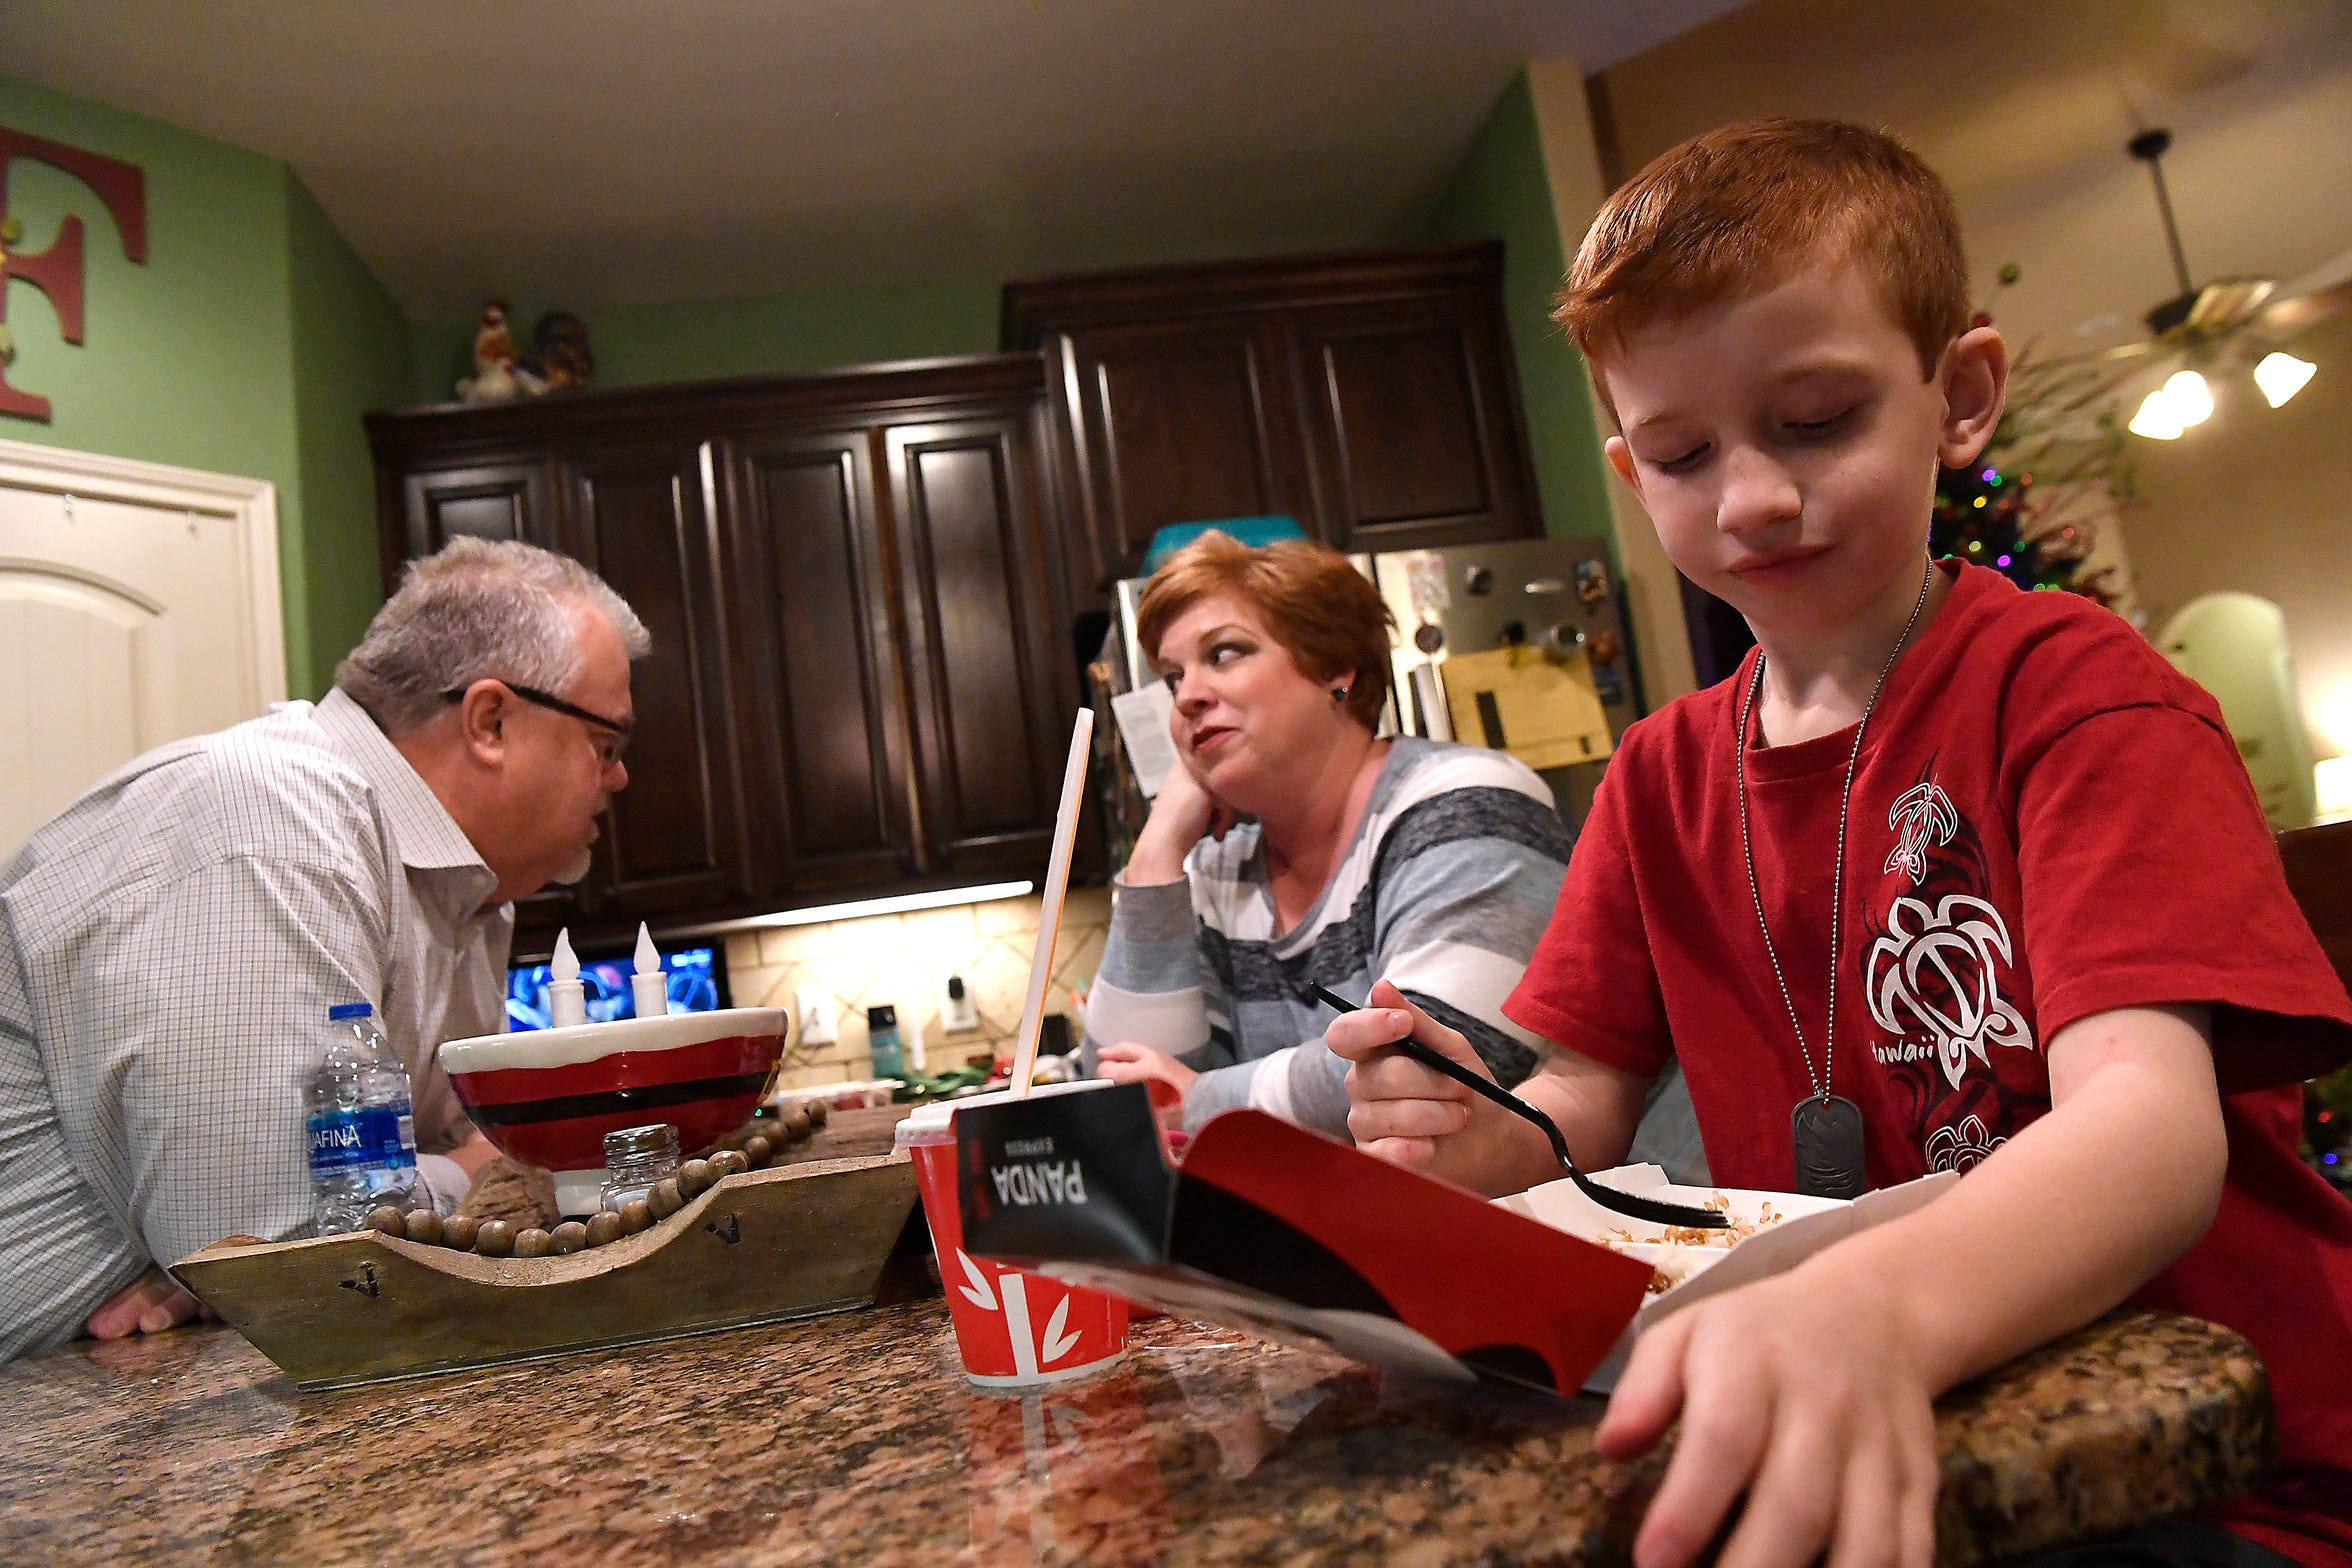 Lance and Jill Fleming remember their son, Rex Fleming, who died in November 2012 when he was just 10 years old, by keeping the rest of their family constantly aware of what happened seven years ago. Meanwhile, their son Ryan, 8, just wants to finish his dinner.